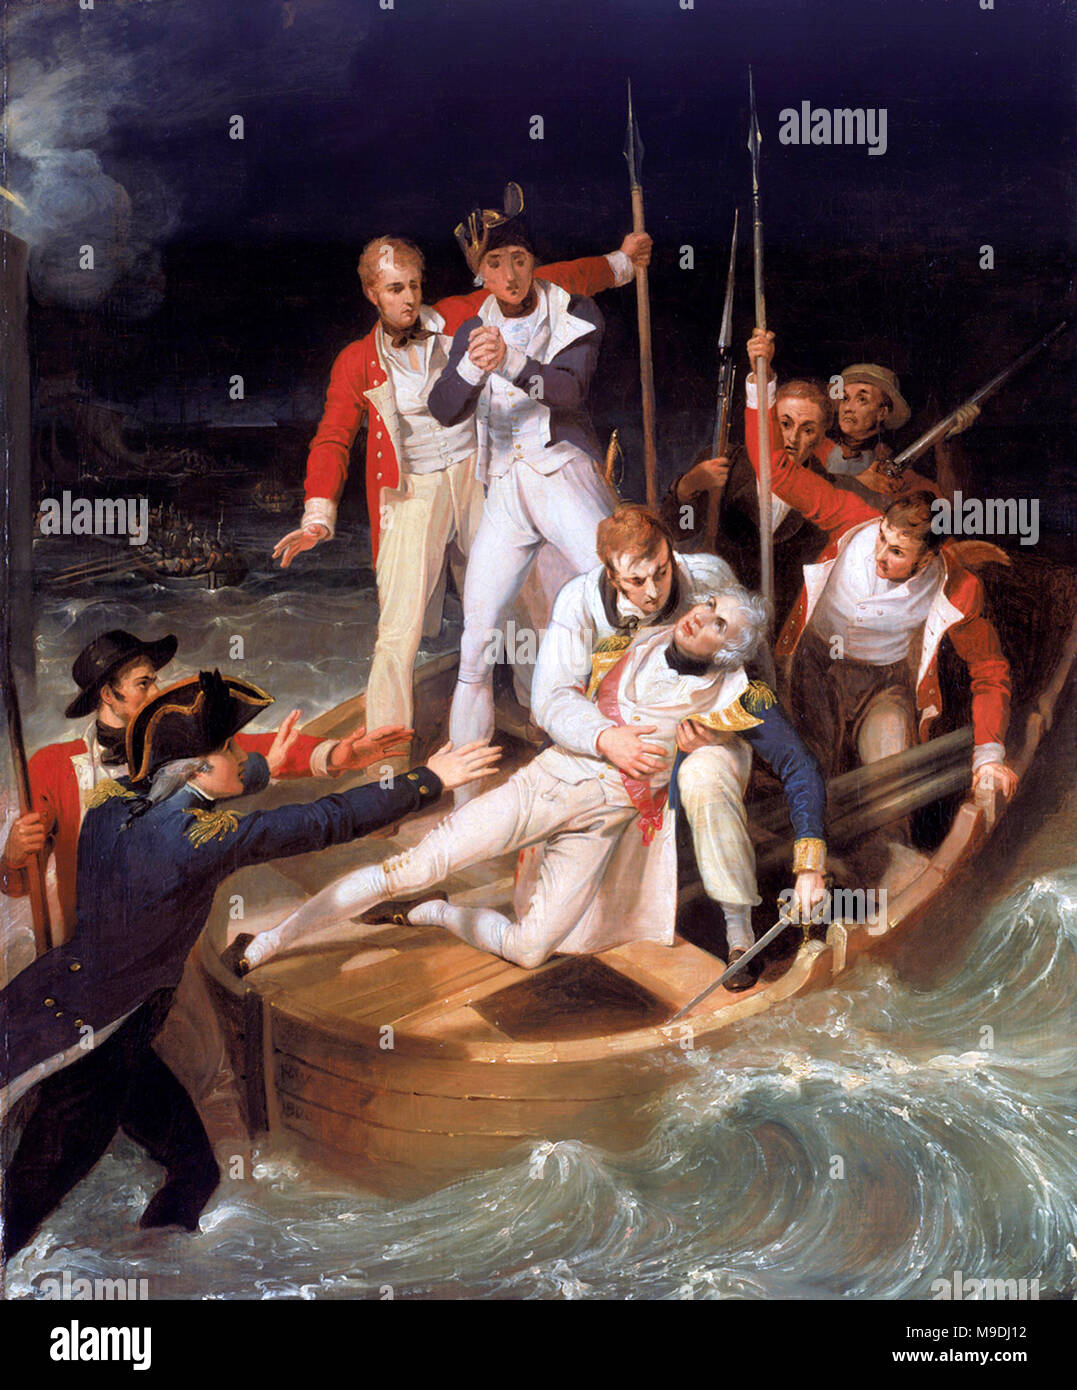 Horatio Nelson wounded during the battle of Santa Cruz de Tenerife; 1806 - Stock Image